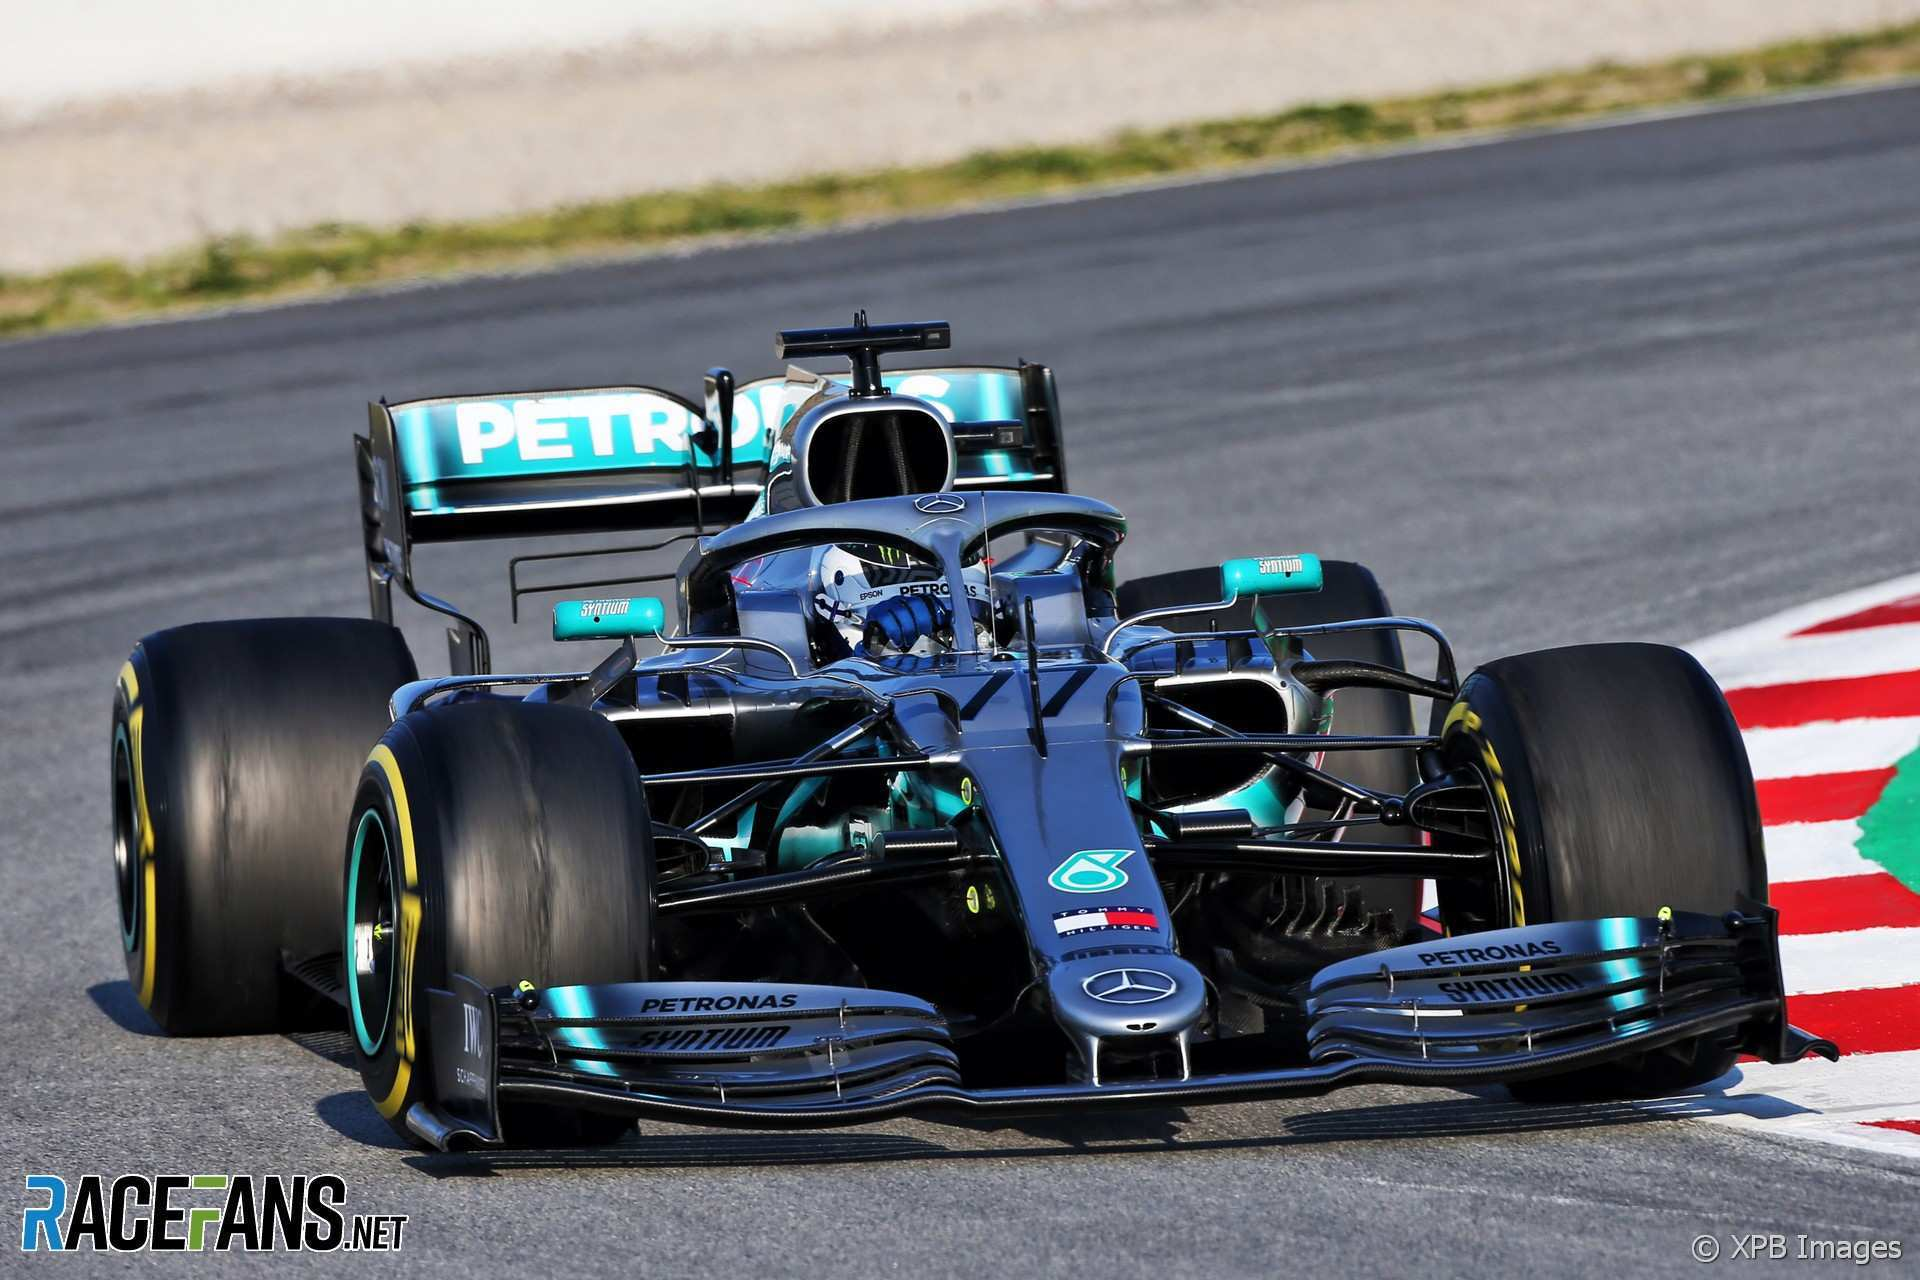 30 New New Bottas Mercedes 2019 Review And Release Date Spy Shoot with New Bottas Mercedes 2019 Review And Release Date